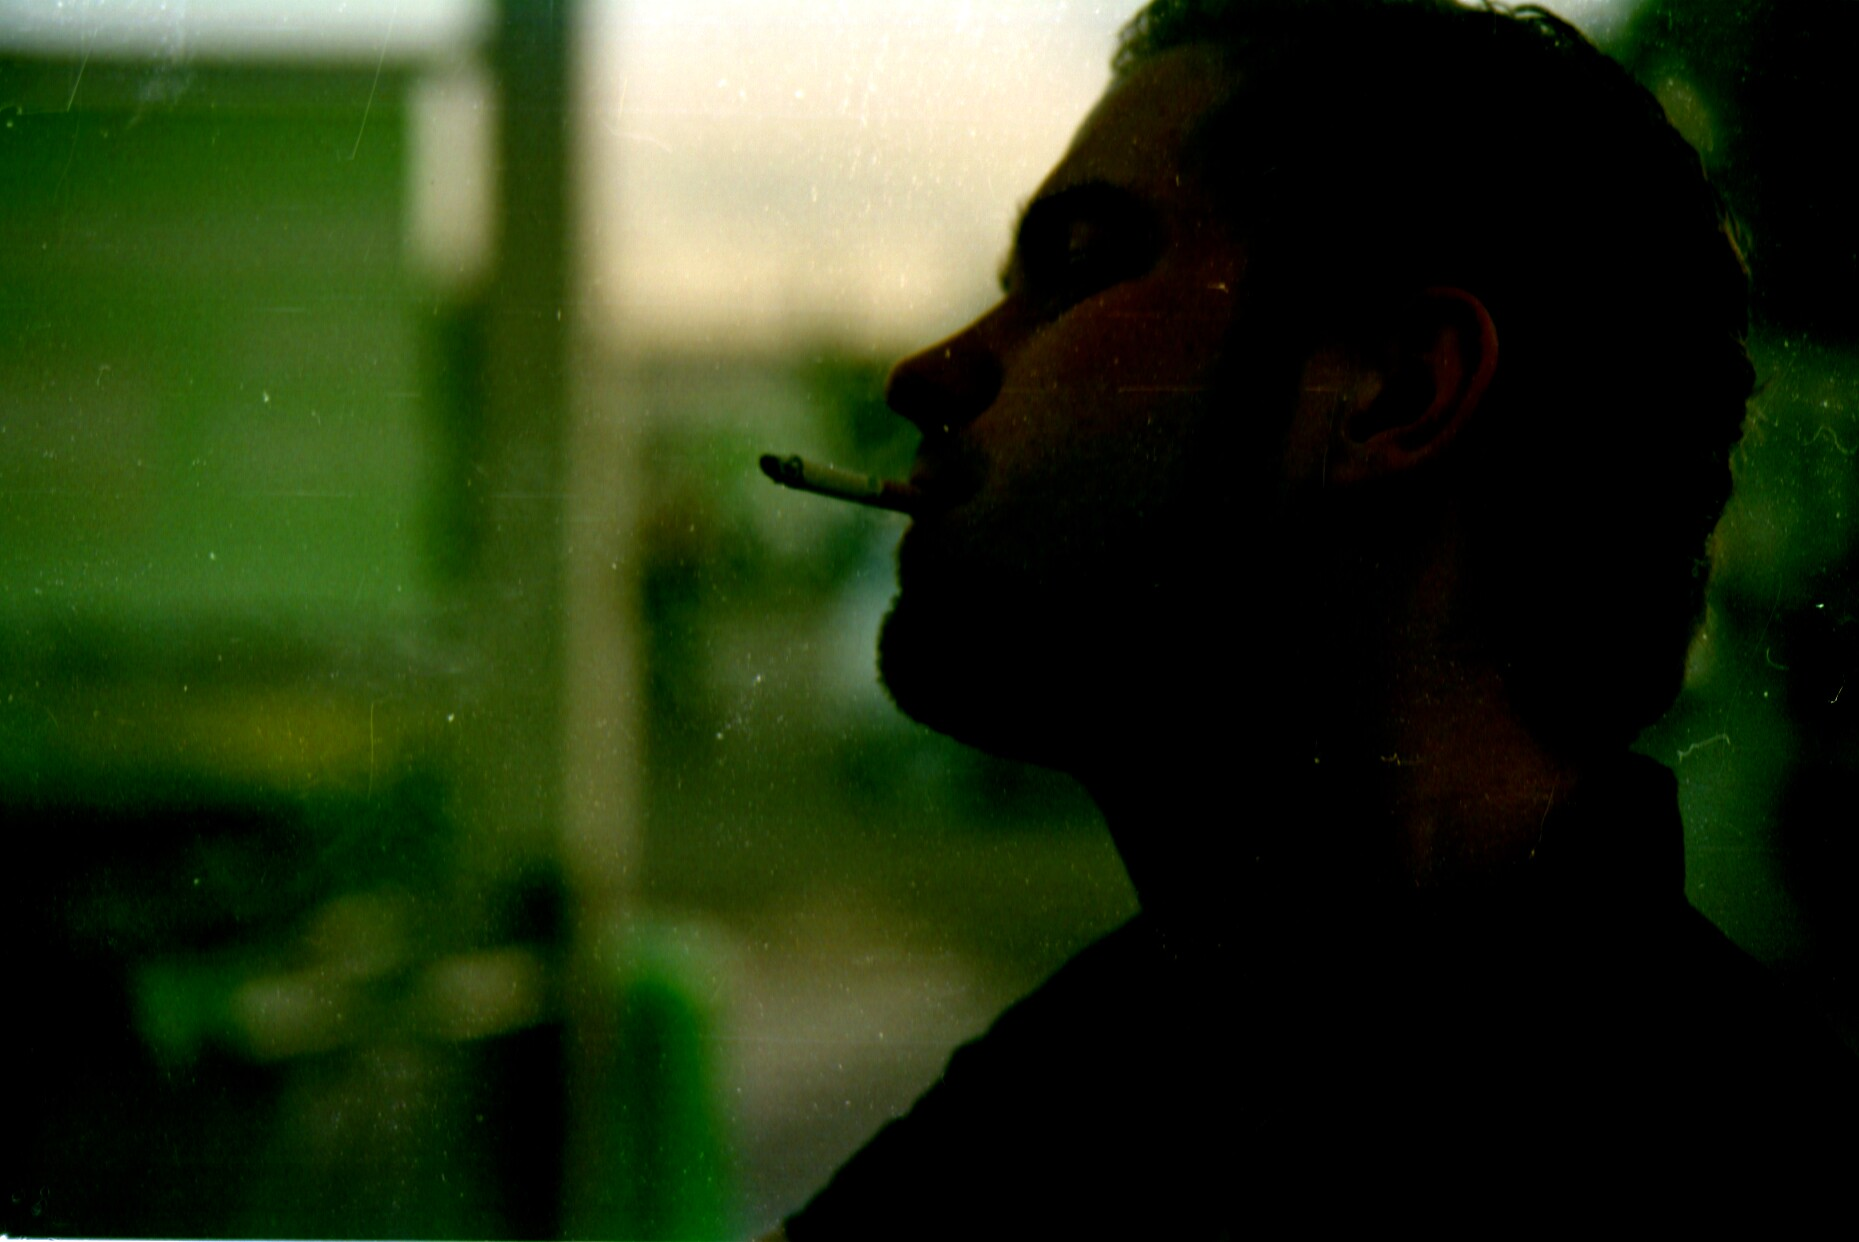 man smoking, taken with Centon DF-300, Vivitar 35-105mm, Tudor film.